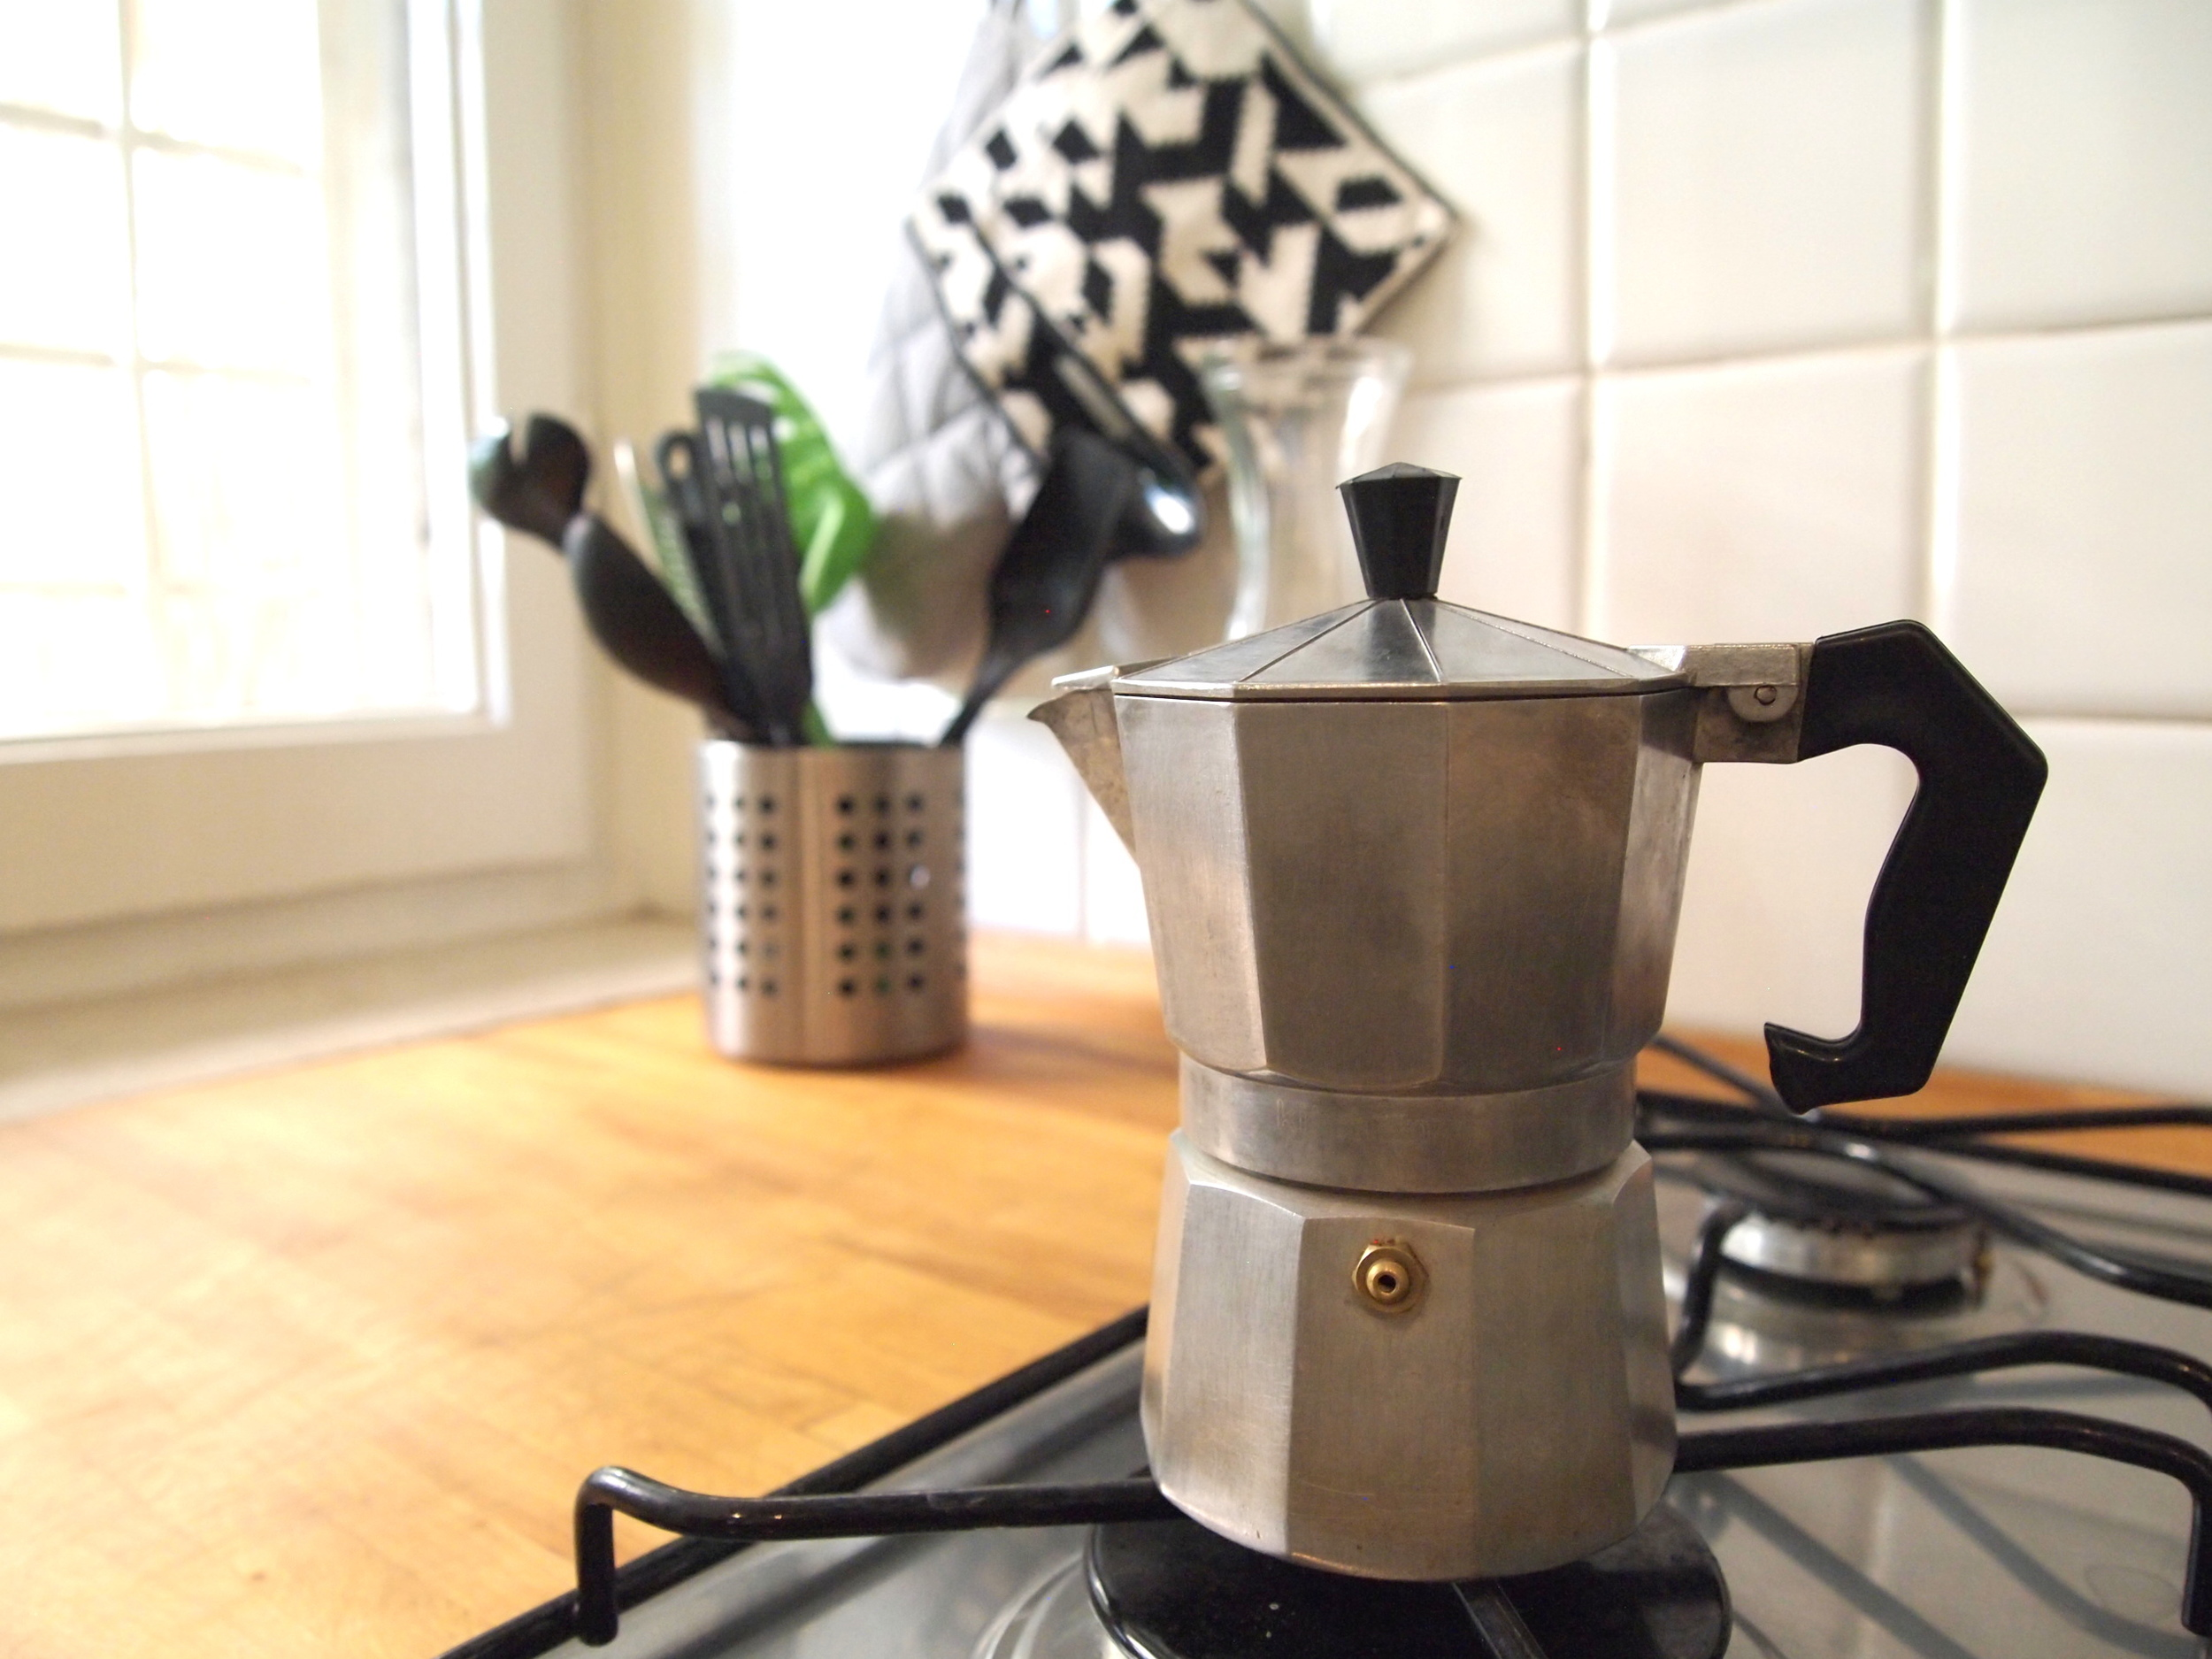 Learning the art of the iconic Moka Express {read:Jet lag miracle worker}, createdin Italy in 1933. Eighty-five years laterthe same design is still sold.